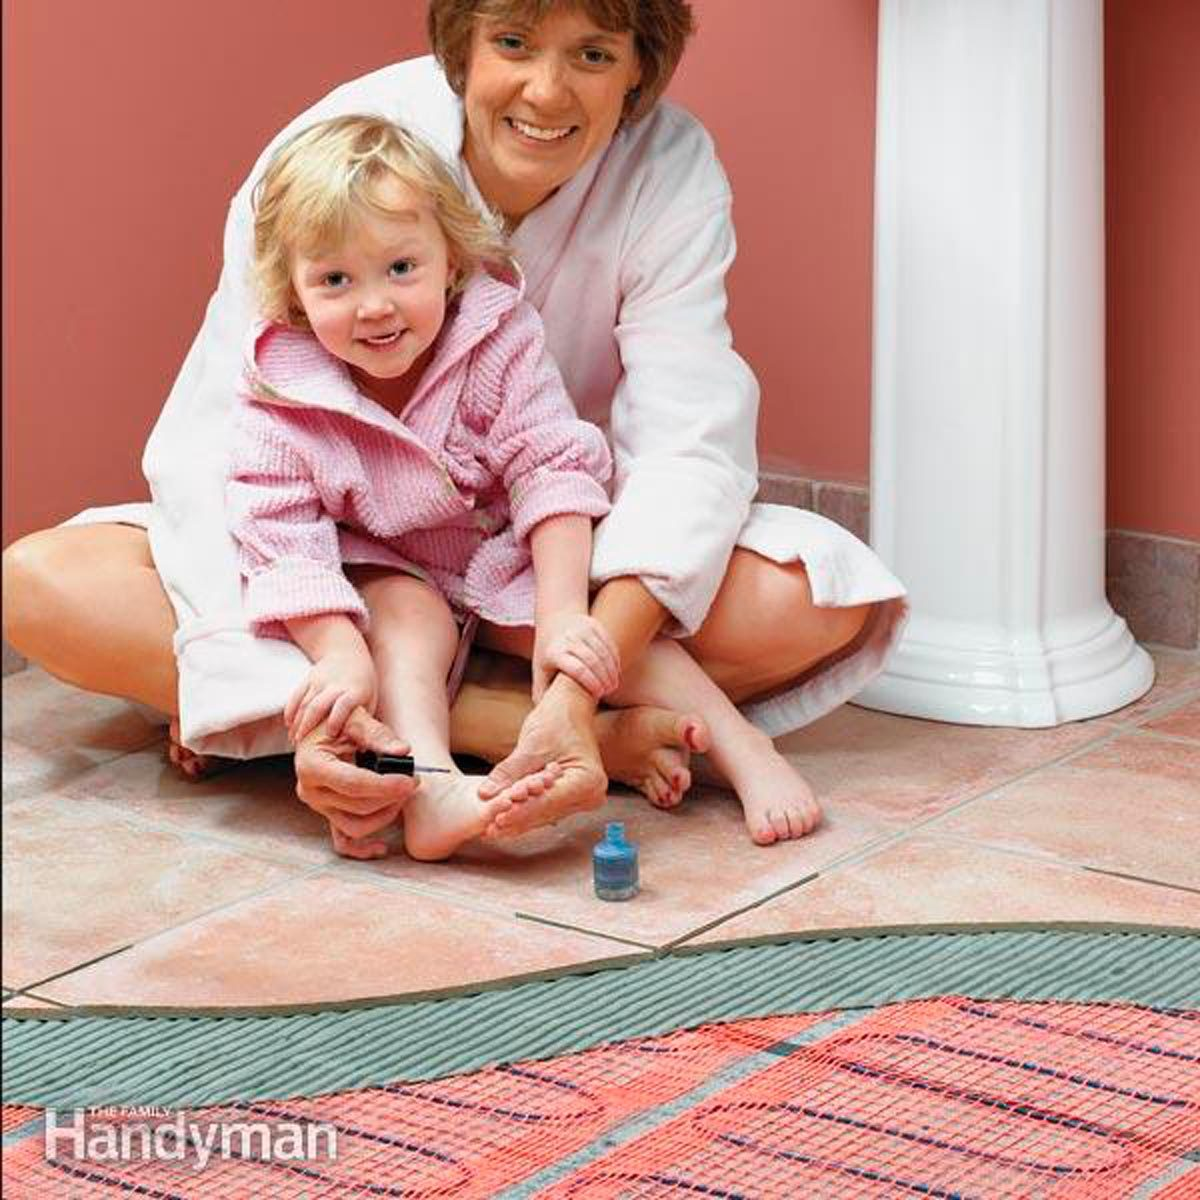 How To Install In Floor Heat Radiant Installation The Family Underfloor Heating Wiring Diagrams Handyman